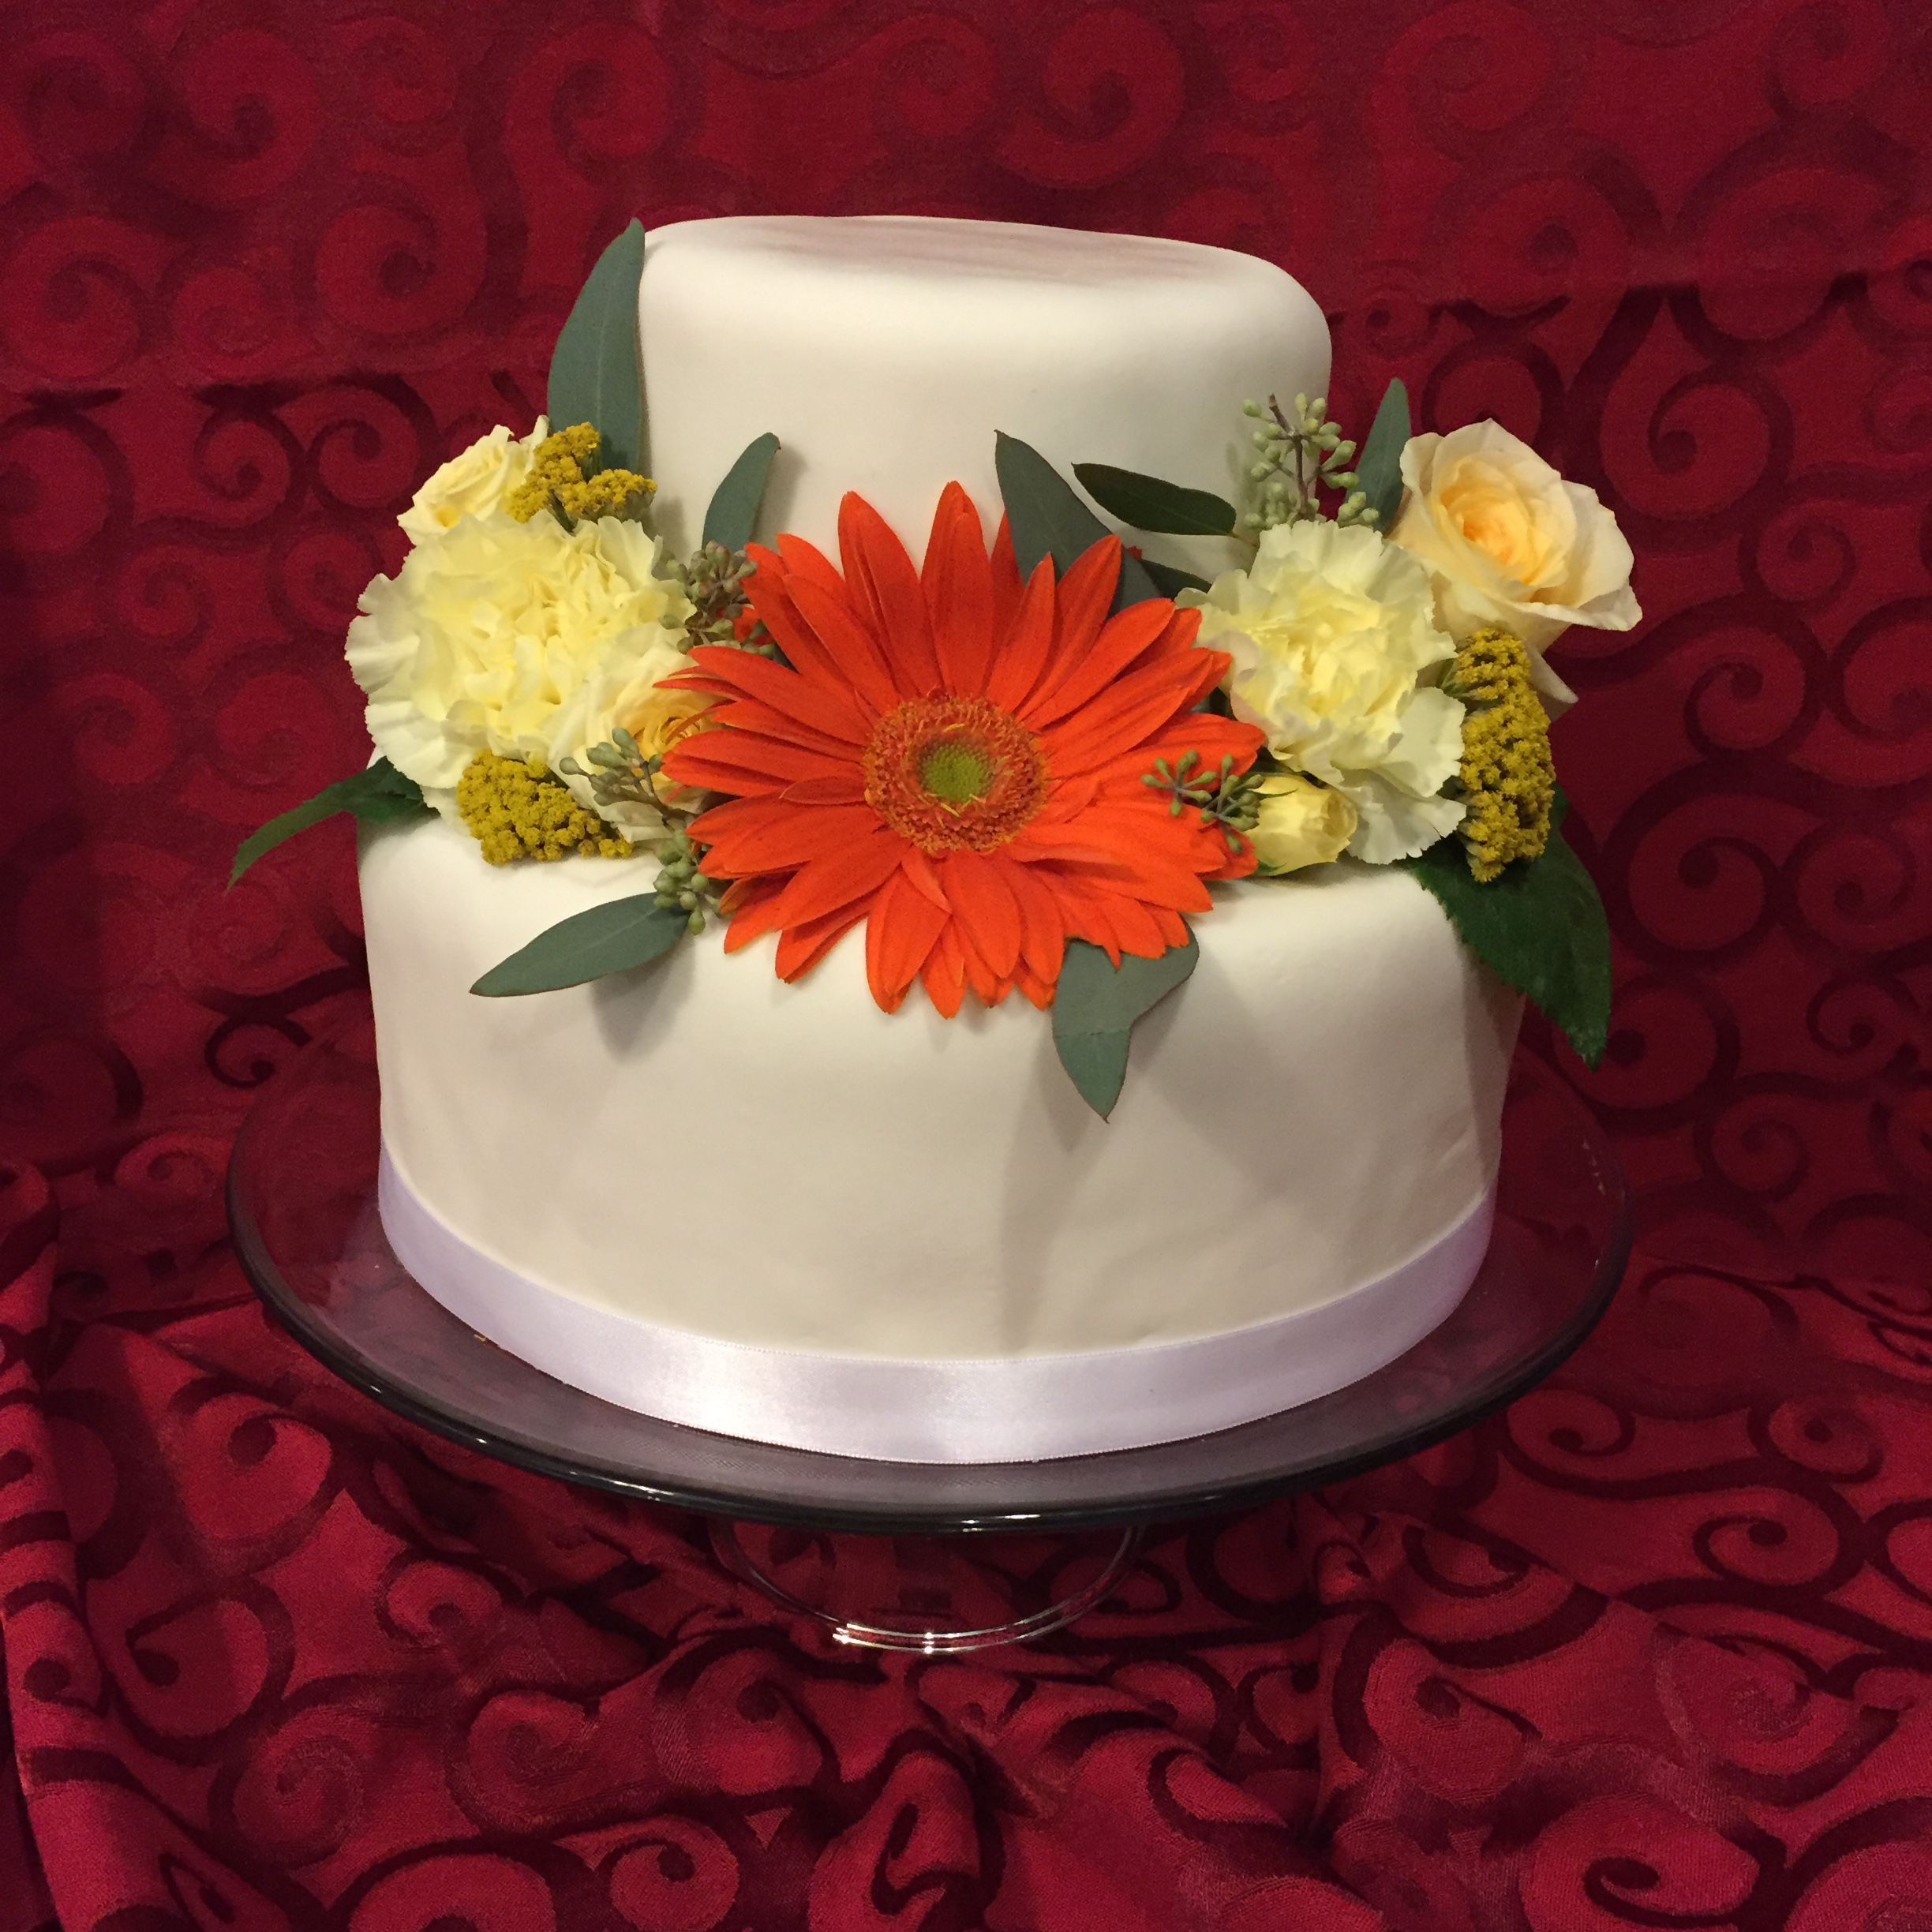 gerbera daisy wedding cakes white fondant wedding cake with orange and white flowers 14667